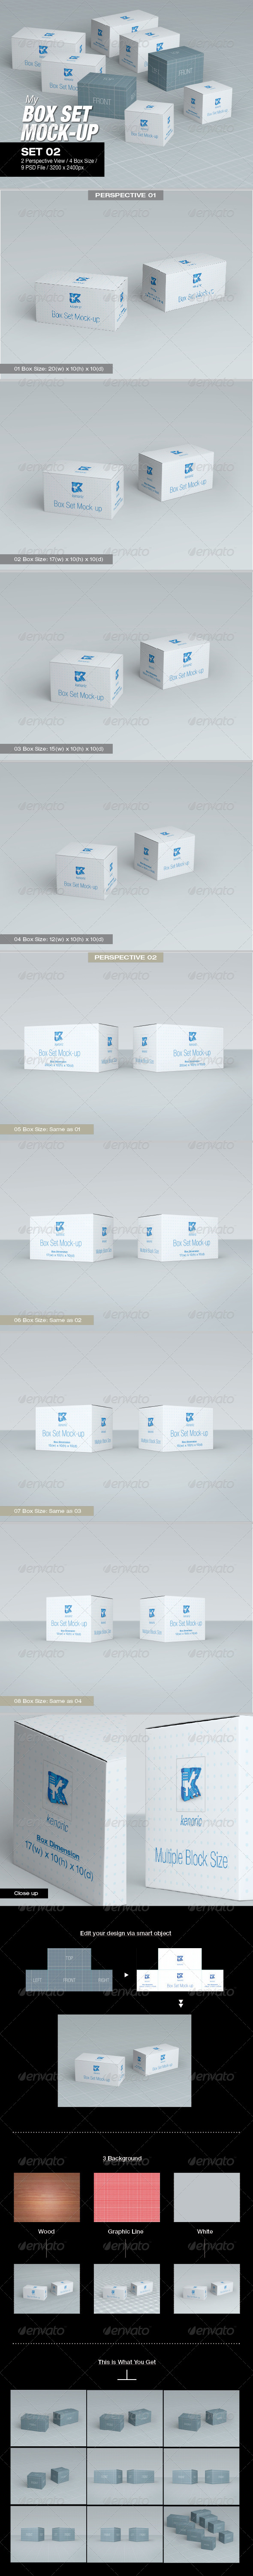 GraphicRiver MyBox Set Mock-Up 02 8772362